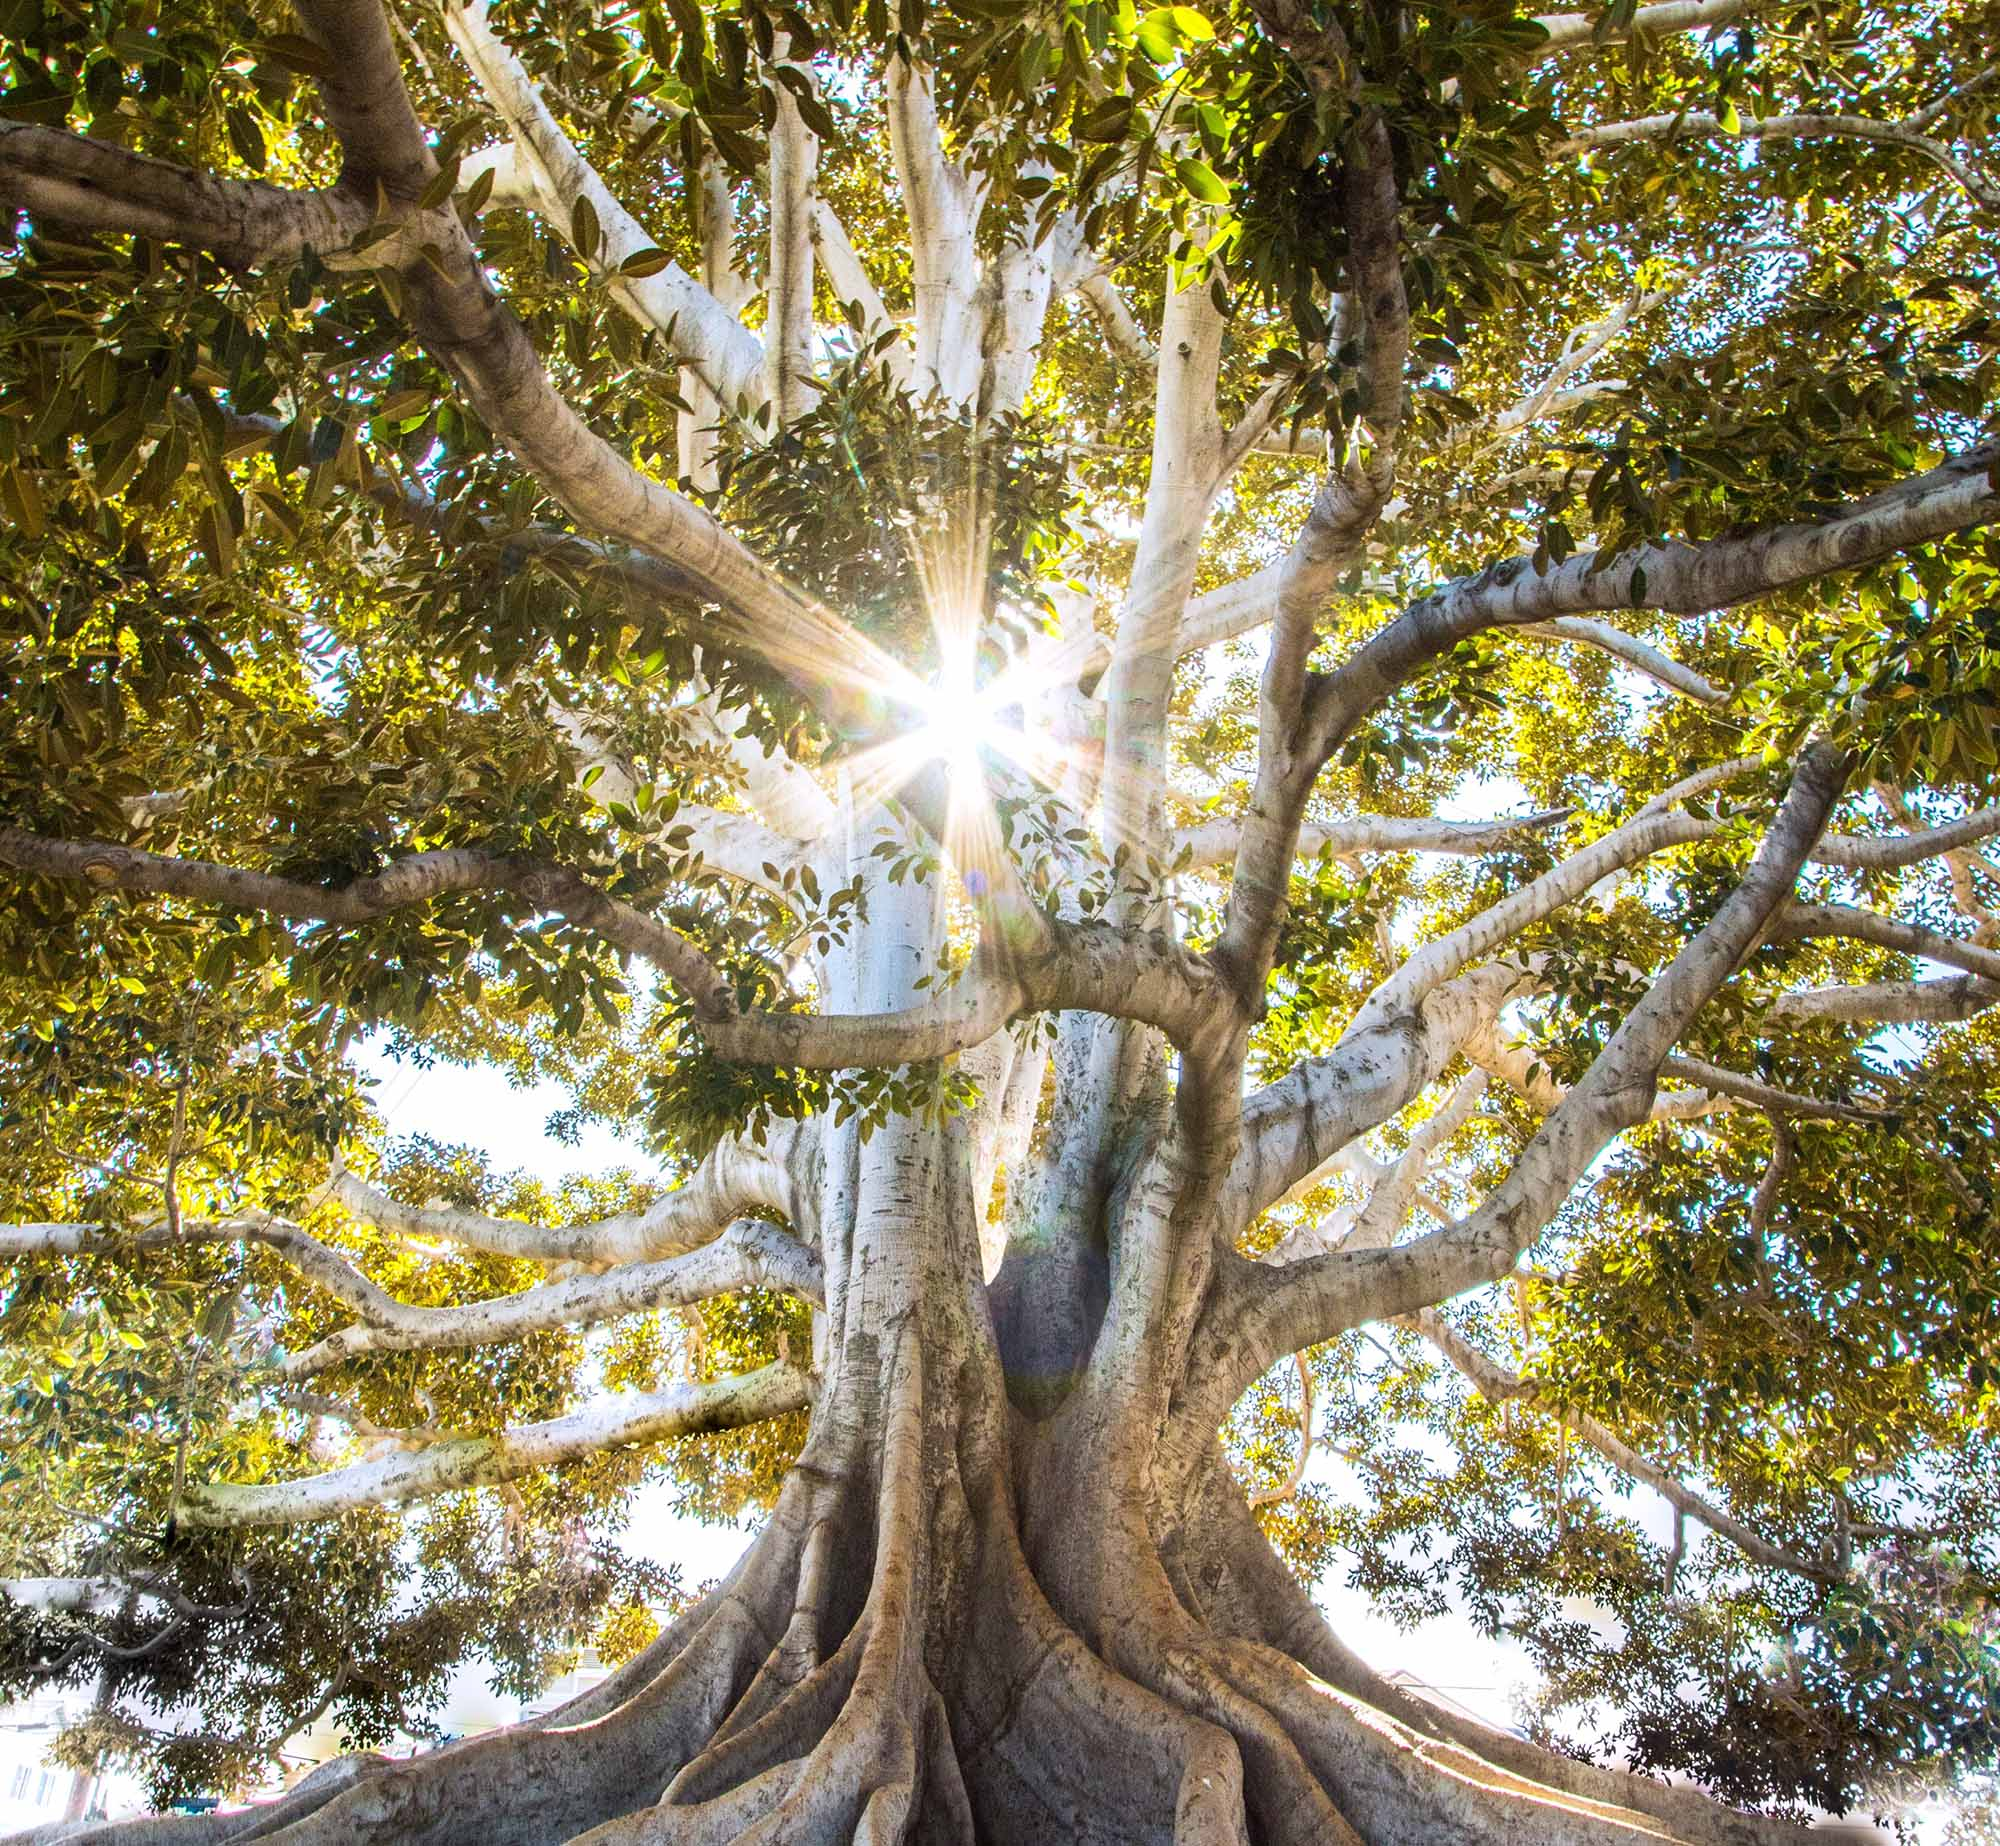 Magnificent rooted Ficus tree with sunlight as key to understanding and knowledge